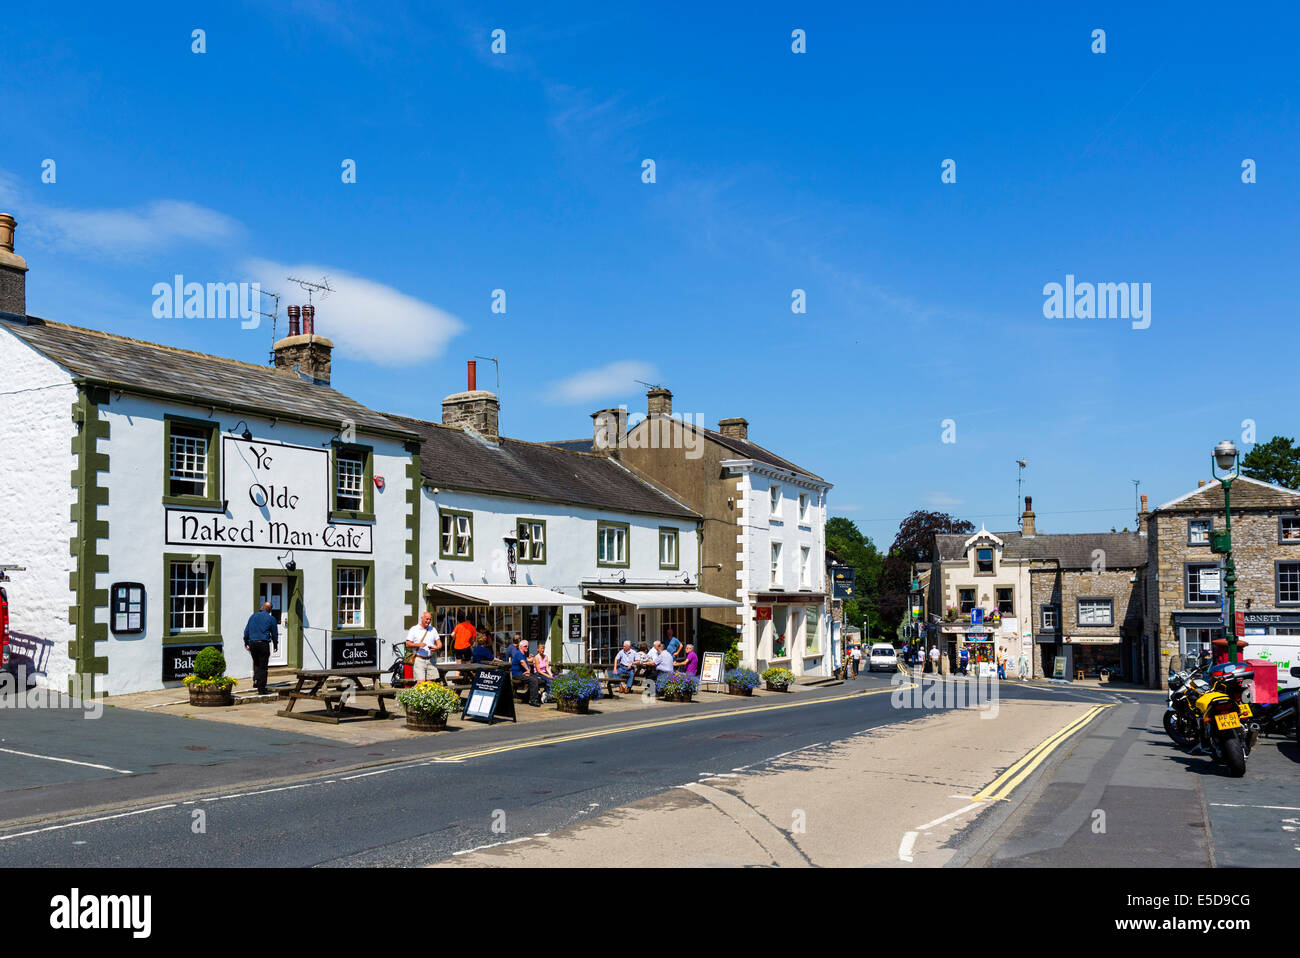 The Market Place in the centre of the small town of Settle, North Yorkshire, UK - Stock Image